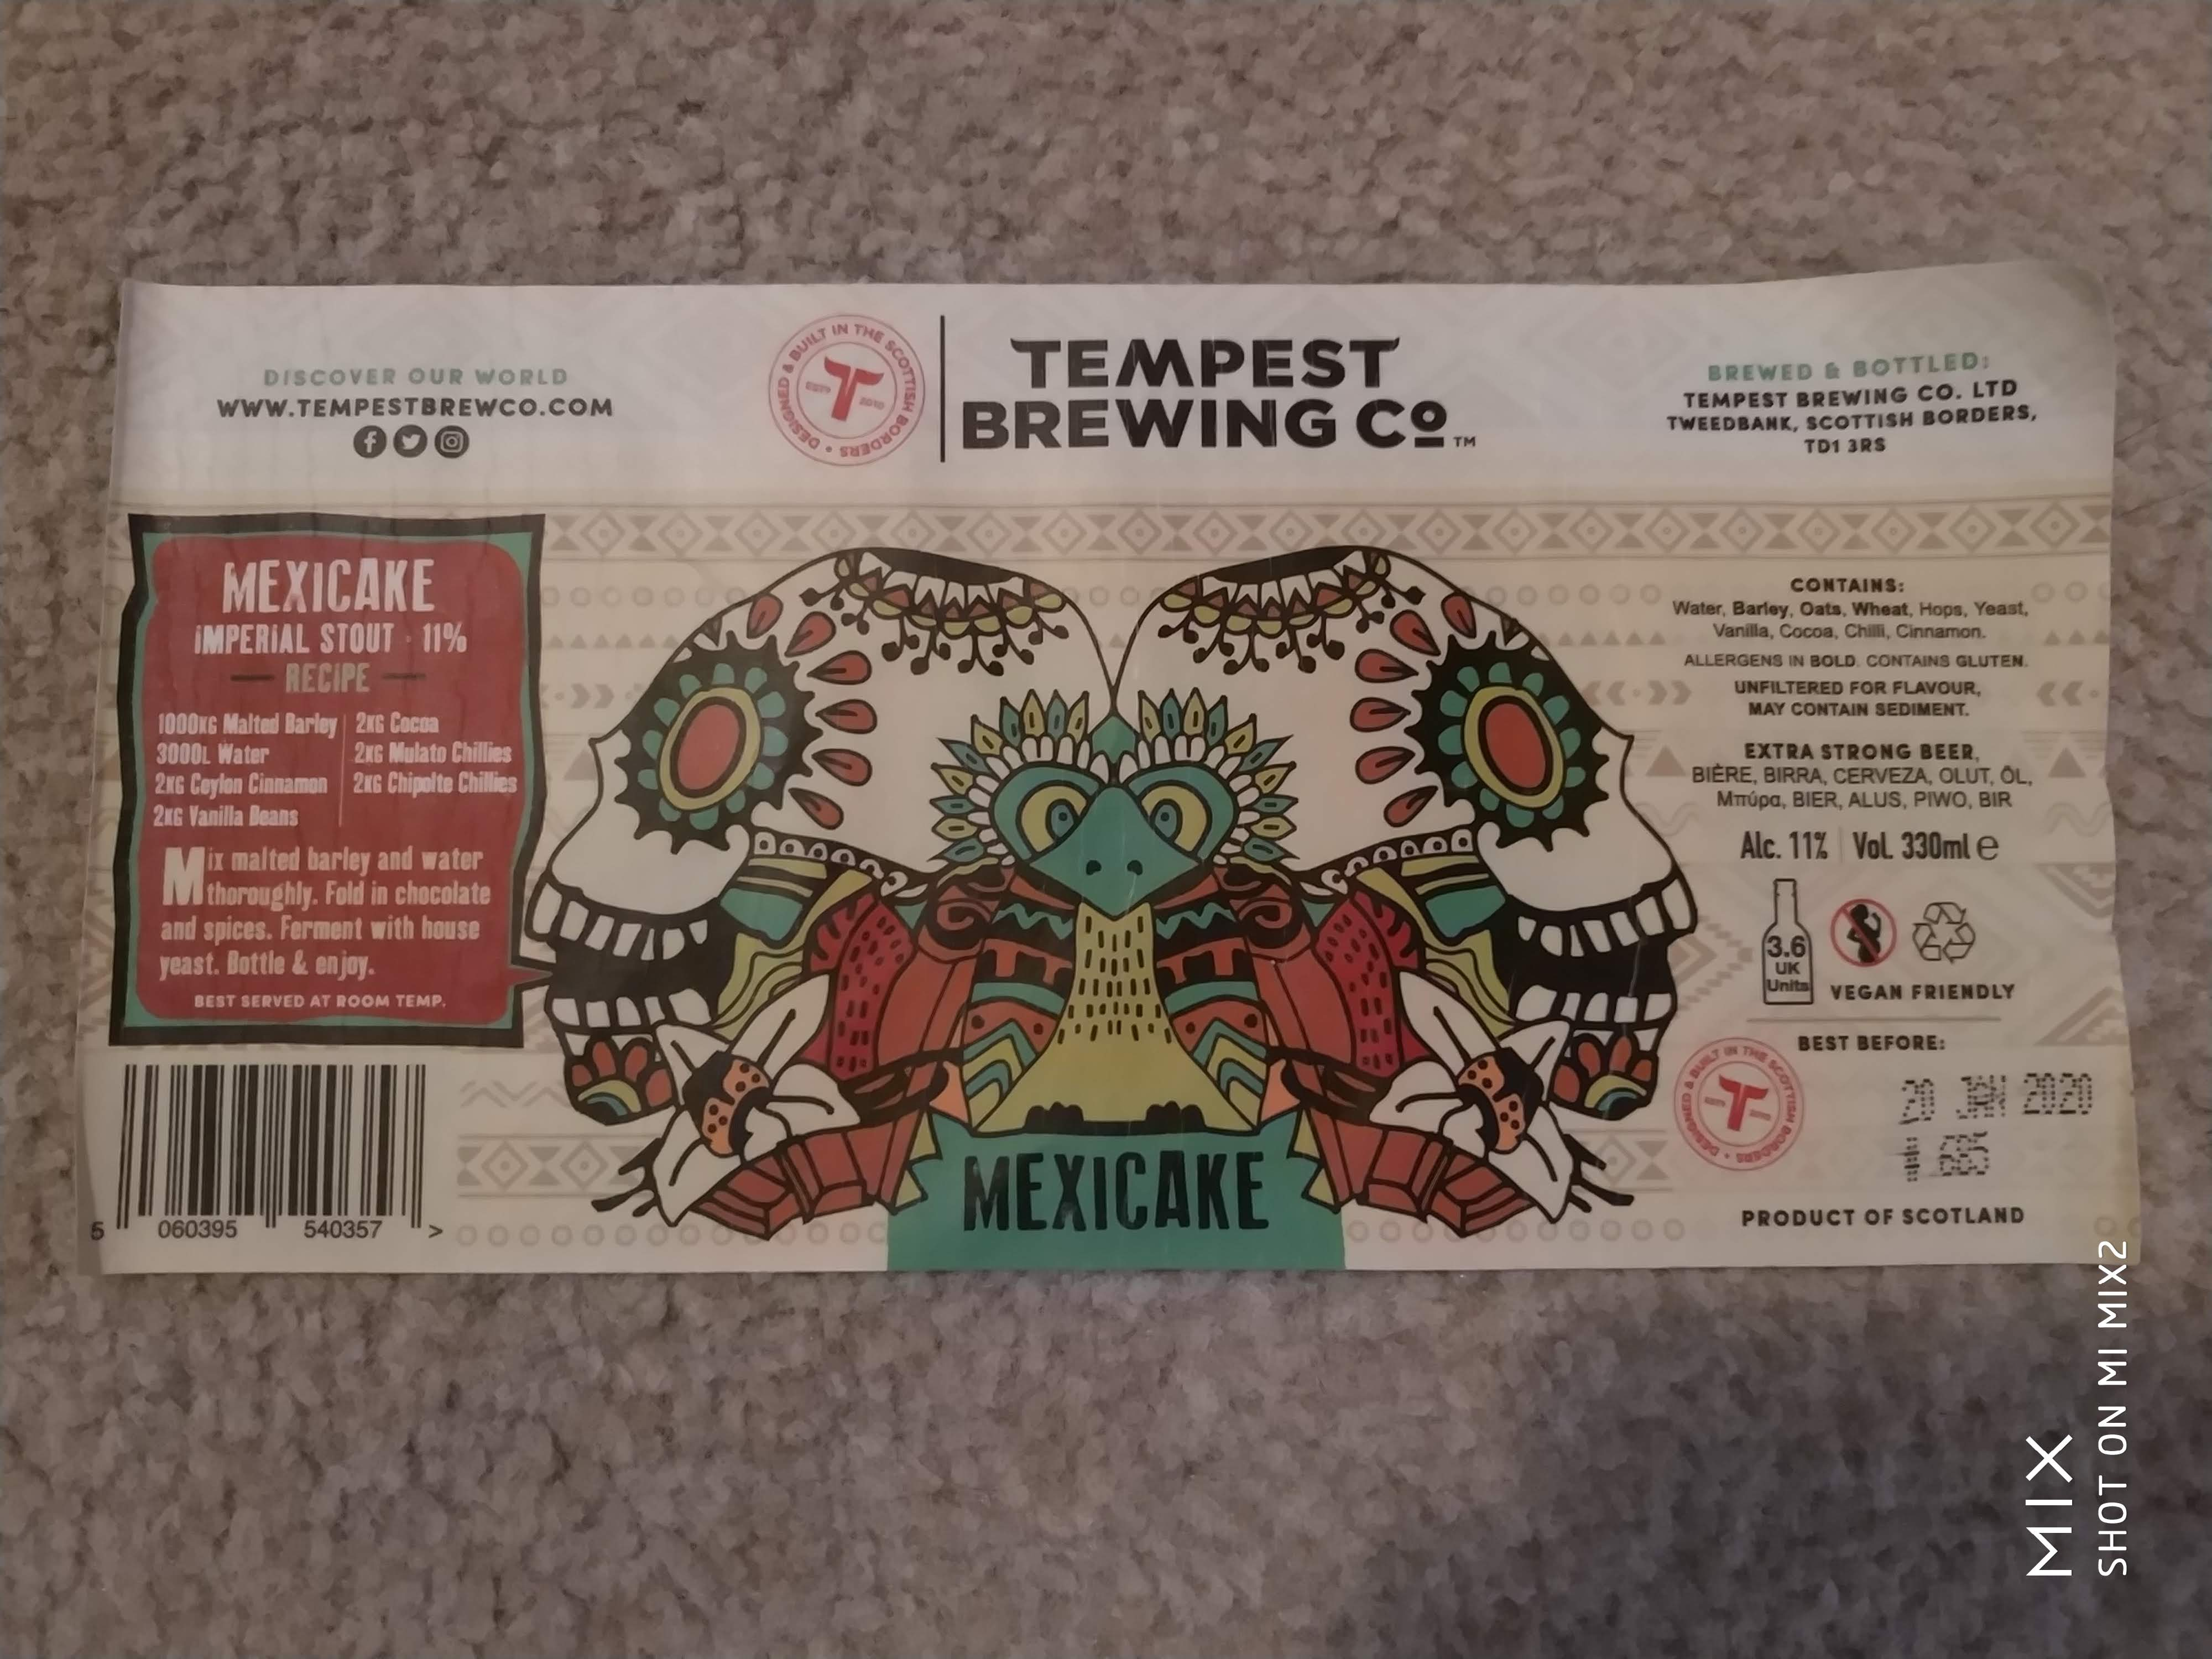 Tempest Brewing Co - Mexicake